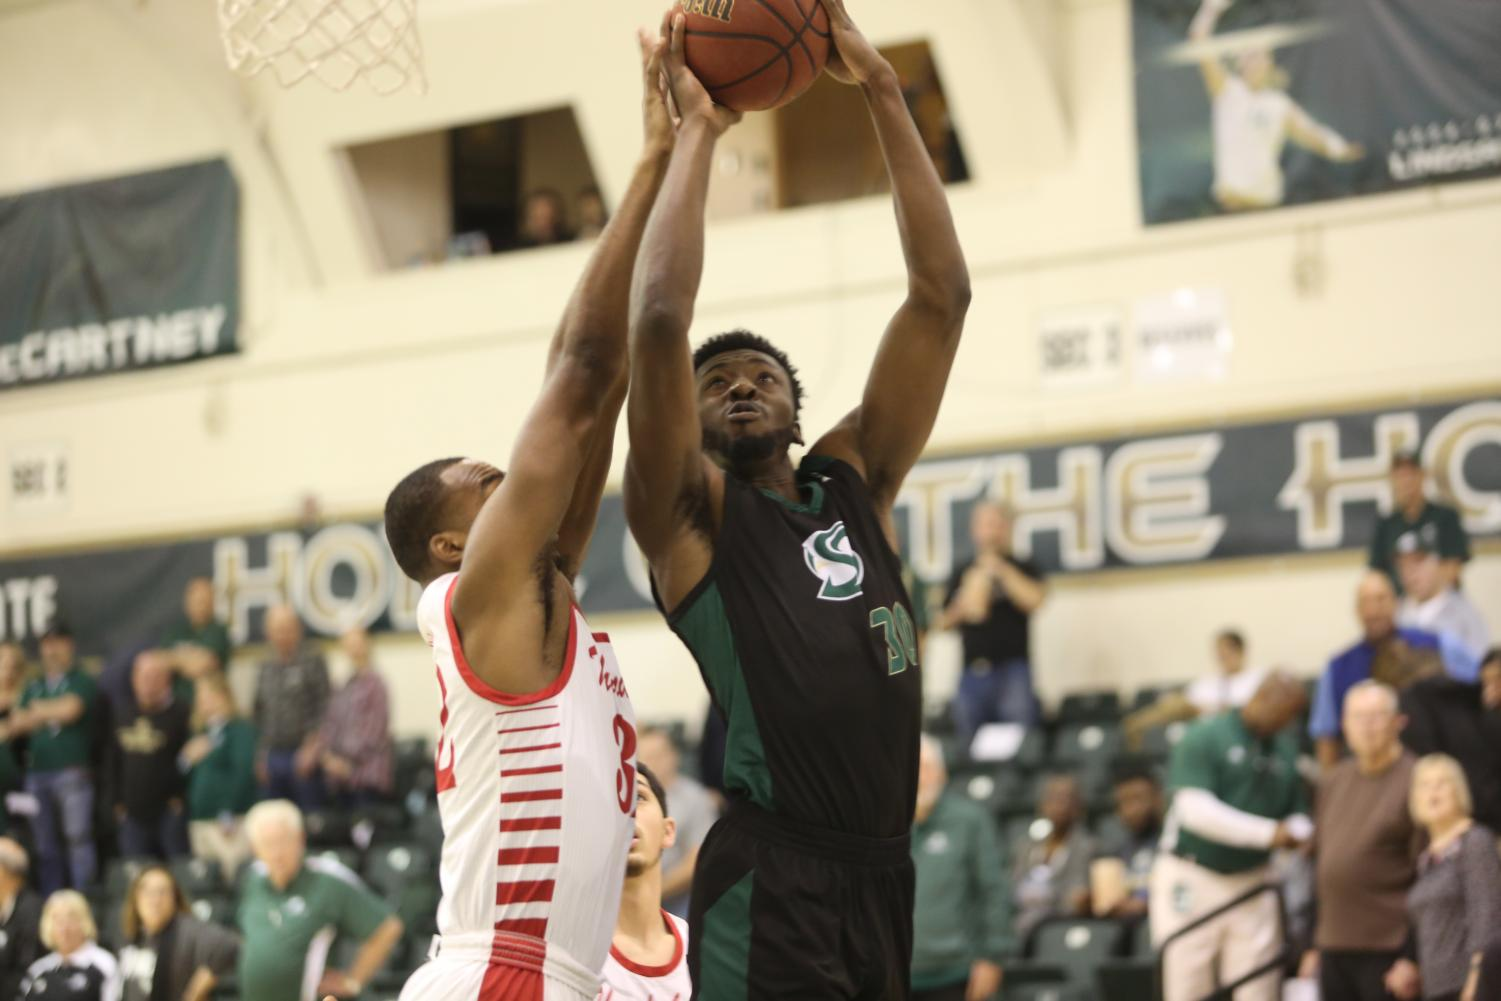 Sac State senior center Joshua Patton rises for a shot against Southern Utah at the Nest on Thursday, Feb. 13. The Hornets defeated Southern Utah 70-55.